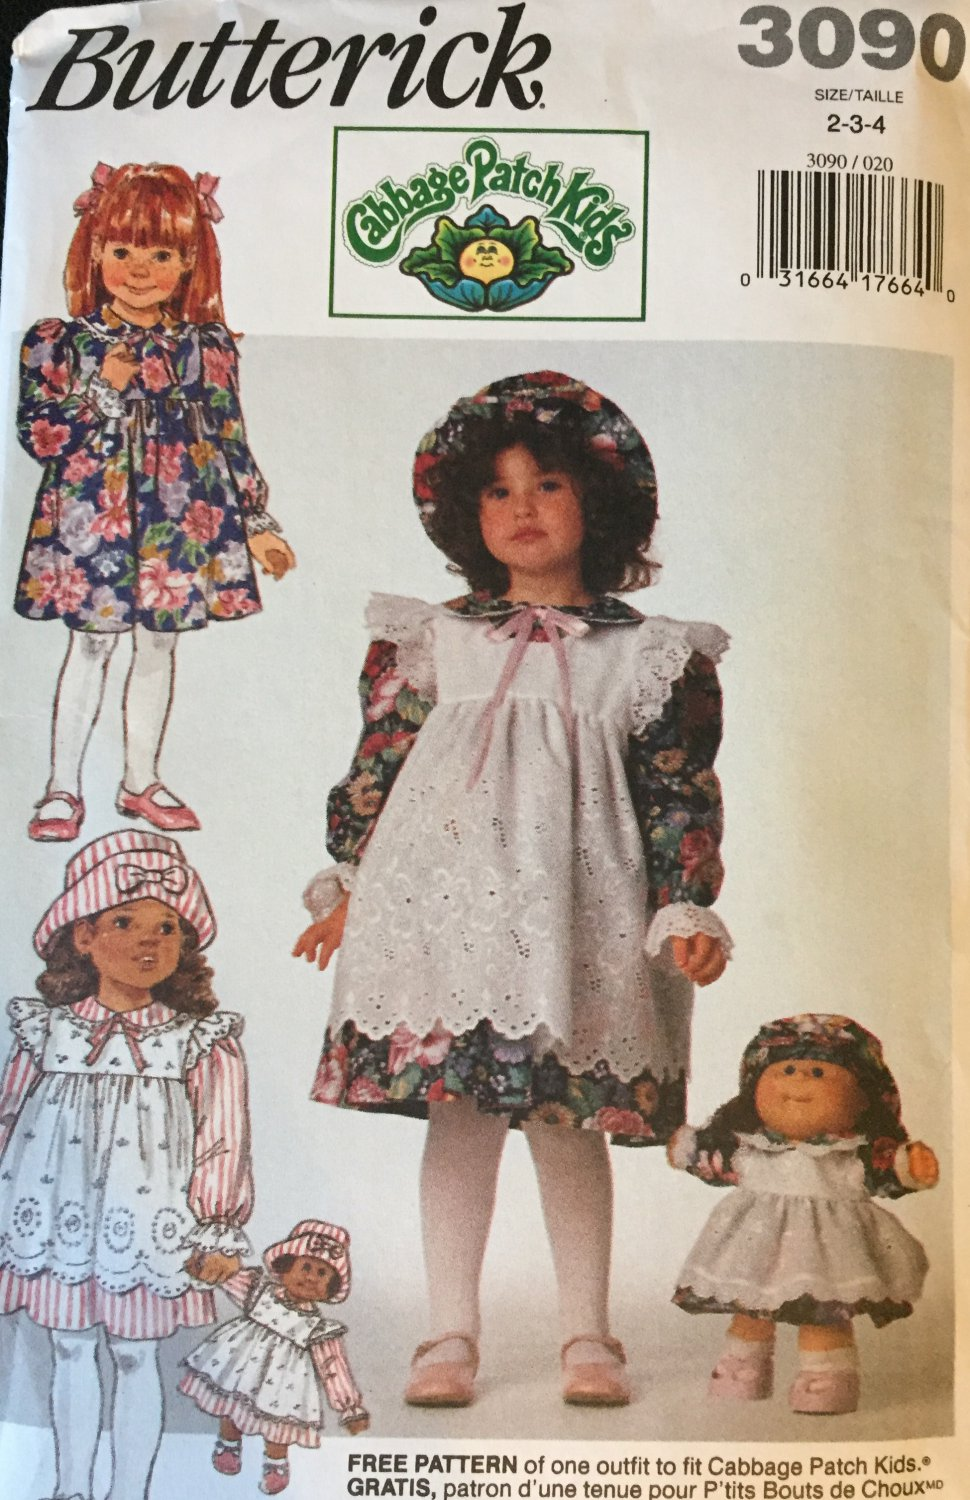 Butterick Sewing Pattern 3090 Girls' Dress, Pinafore, Hat, Doll's Clothes Size: 2-3-4